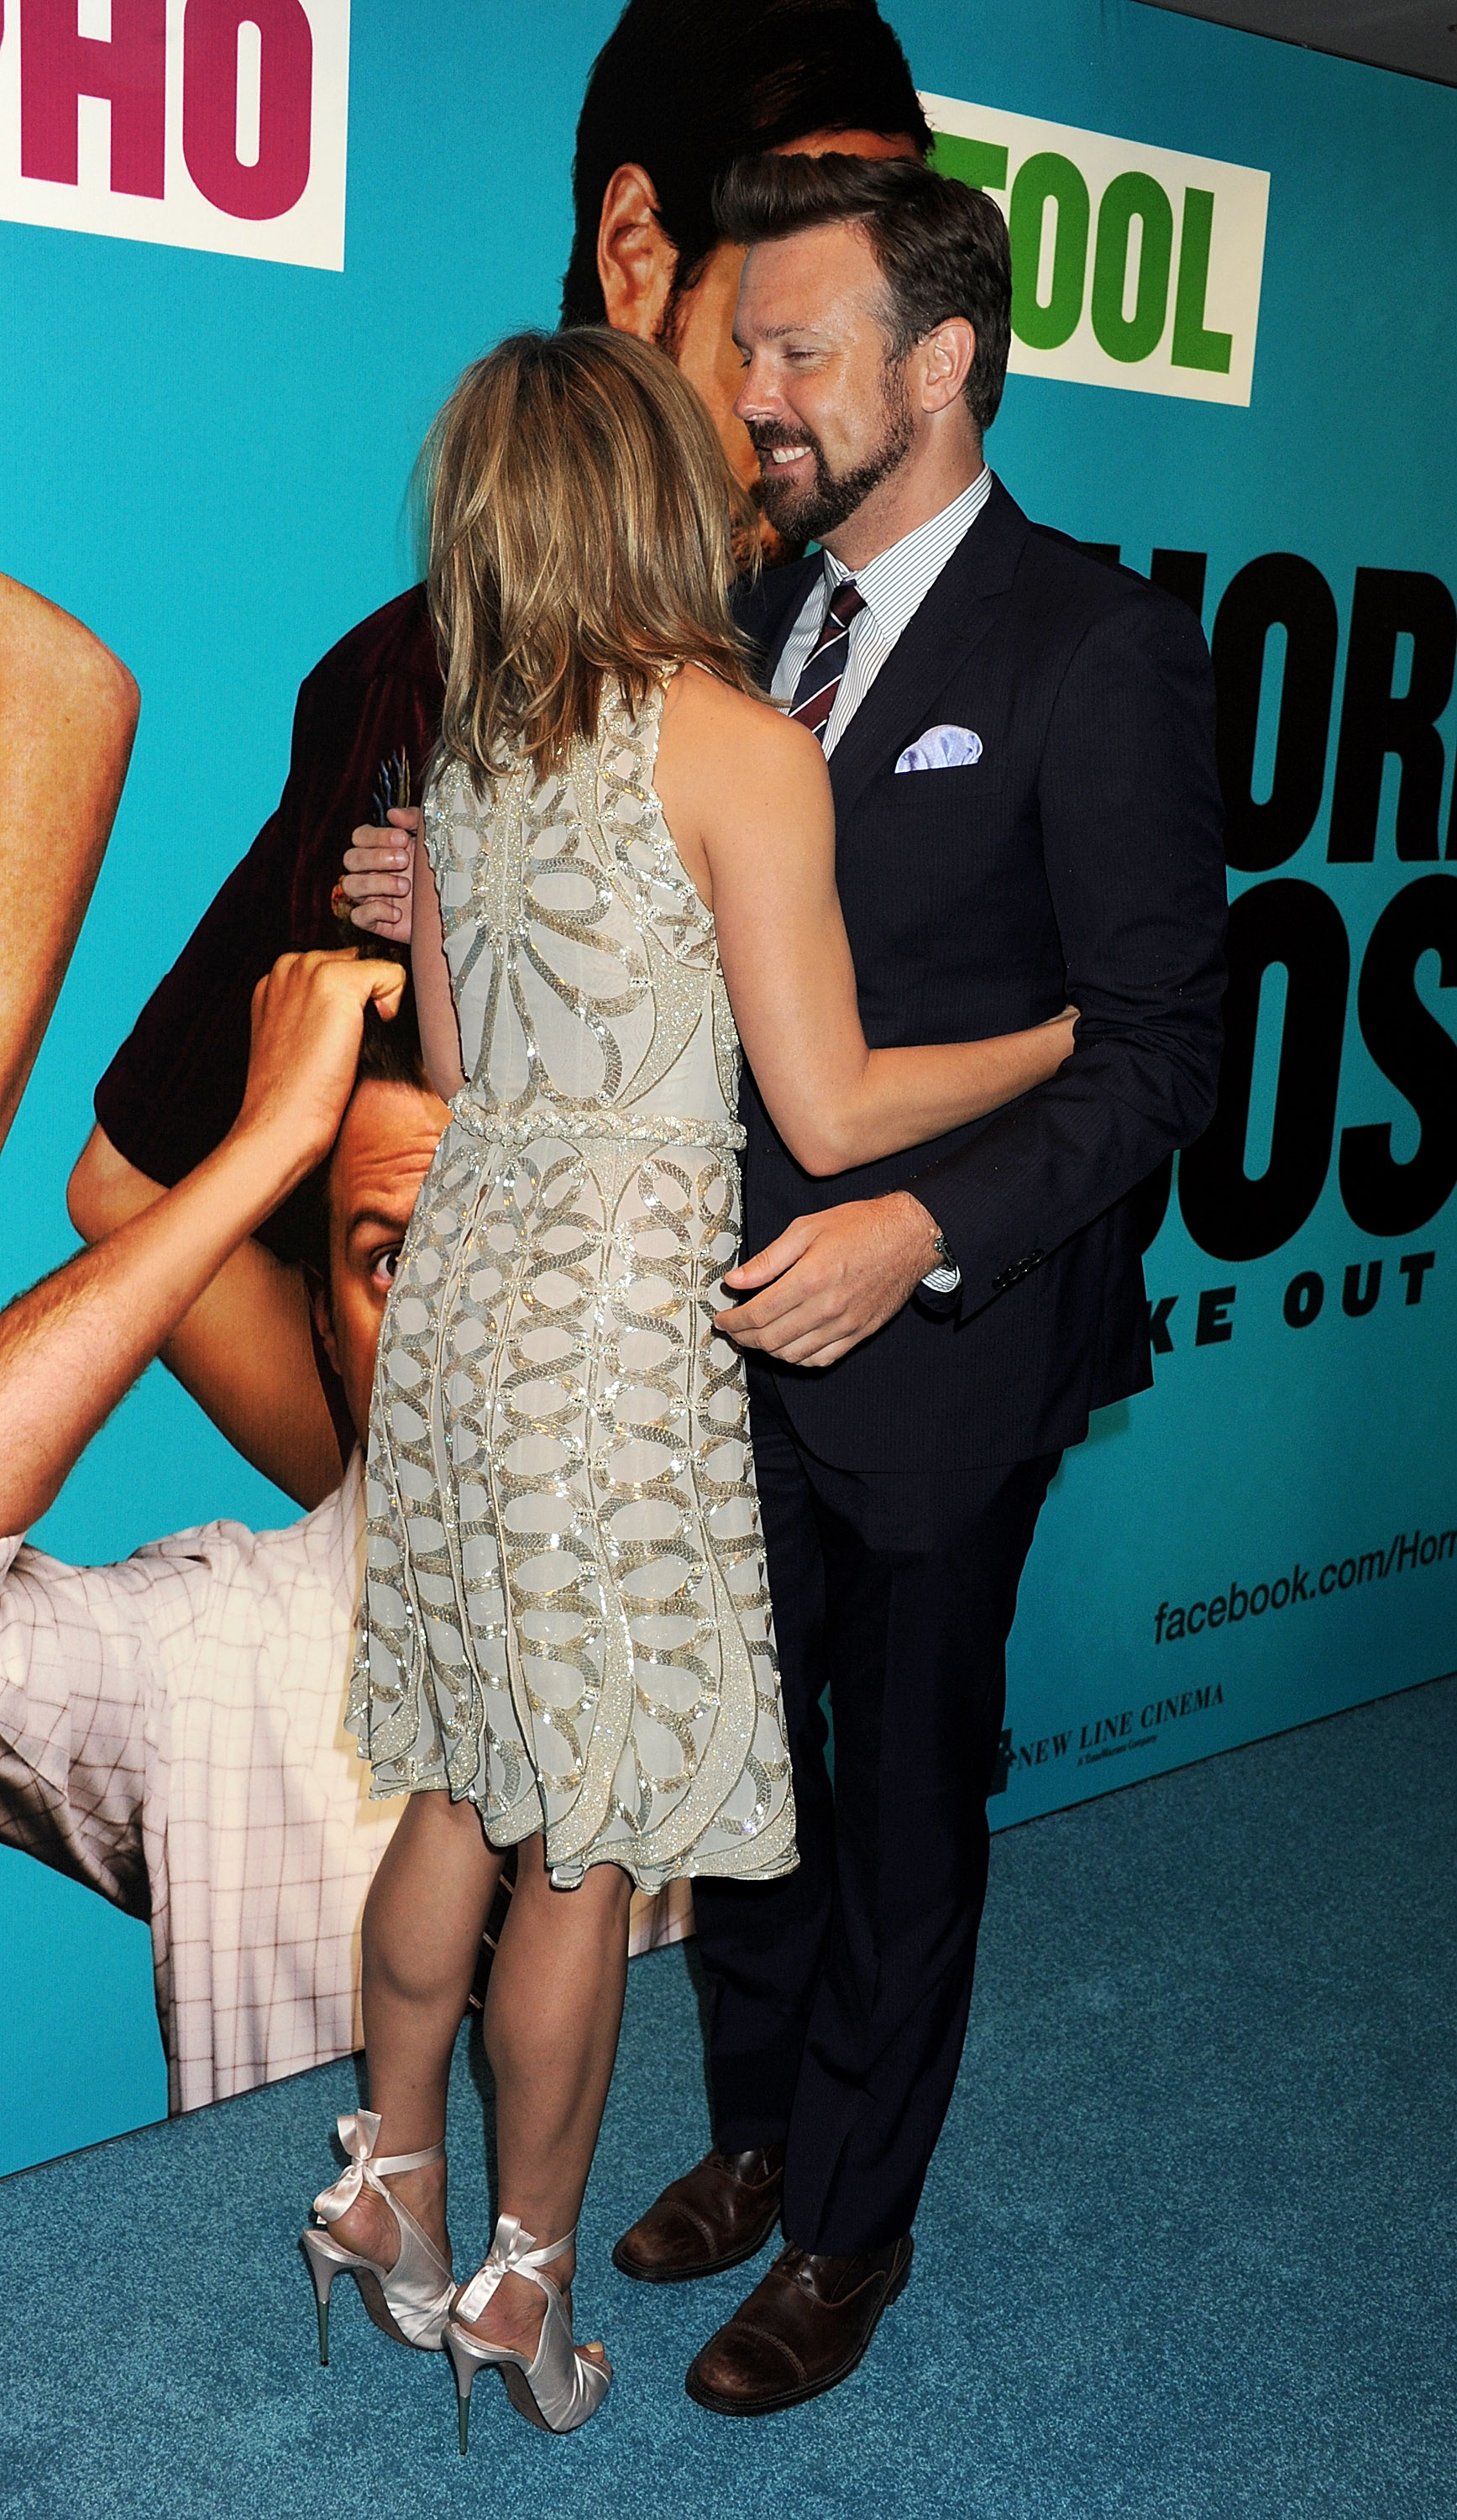 Jennifer Aniston and Jason Sudeikis hugging.